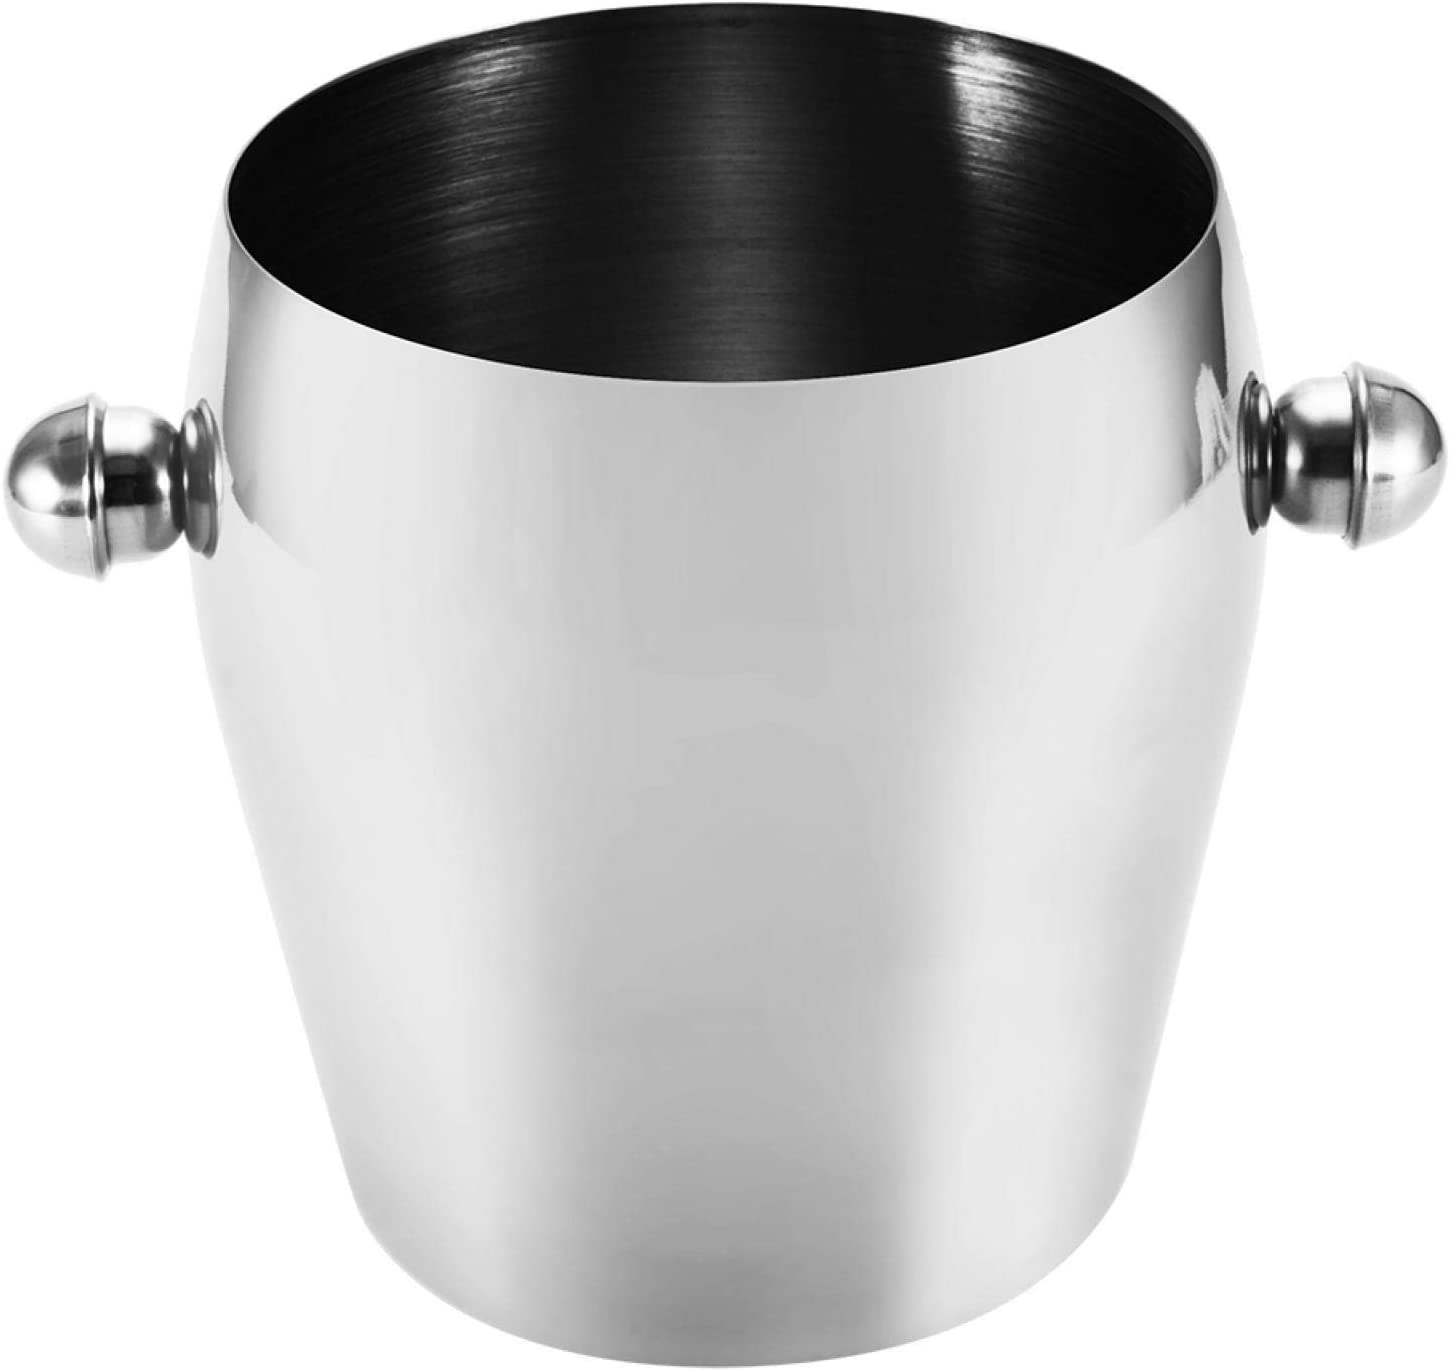 Ice Bucket Modern Portable Latest item Container Double Wall 4 years warranty